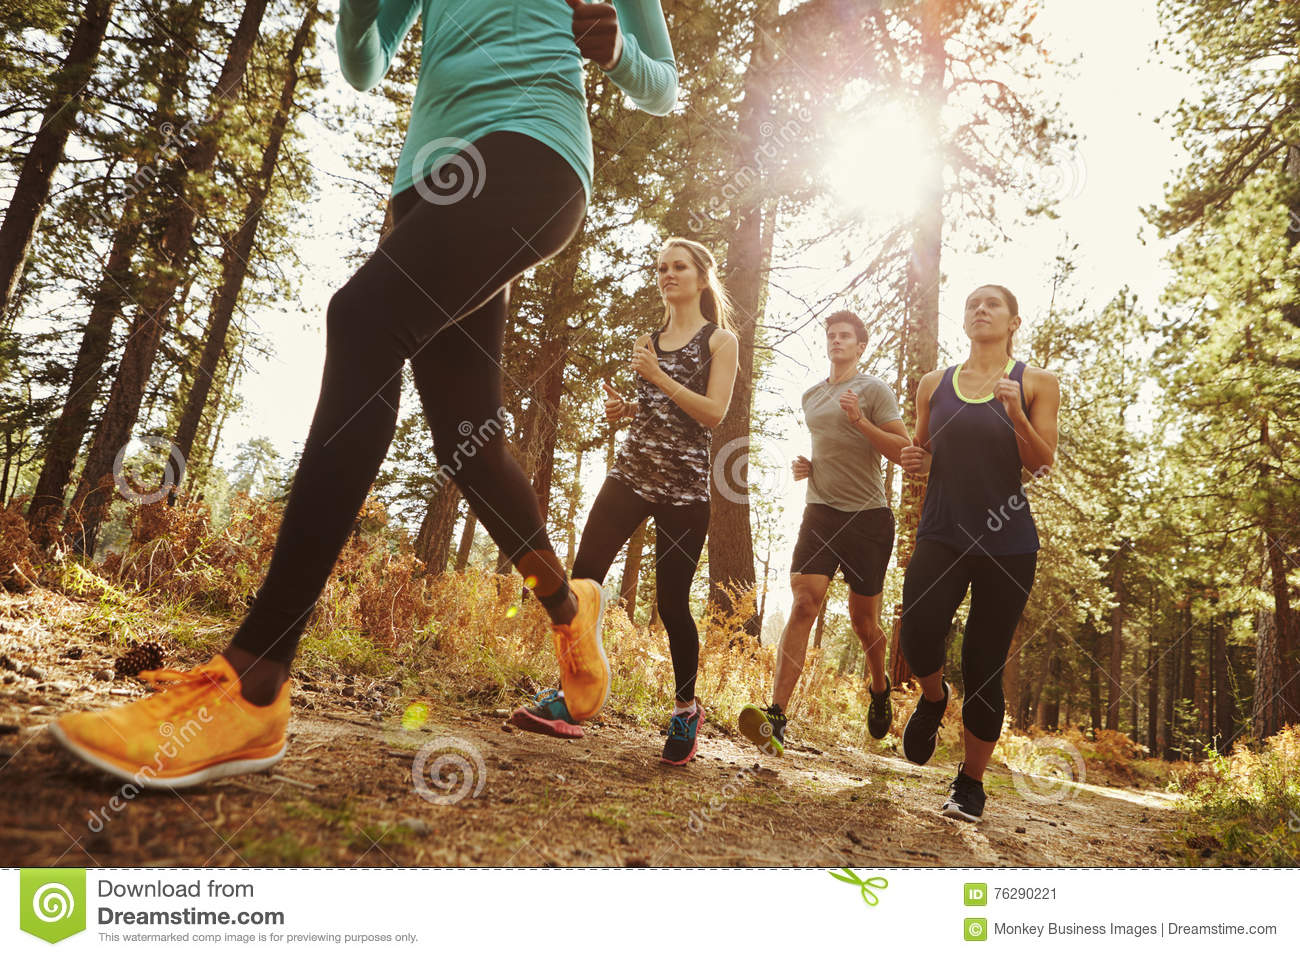 Group of four adults running in a forest, low angle close up